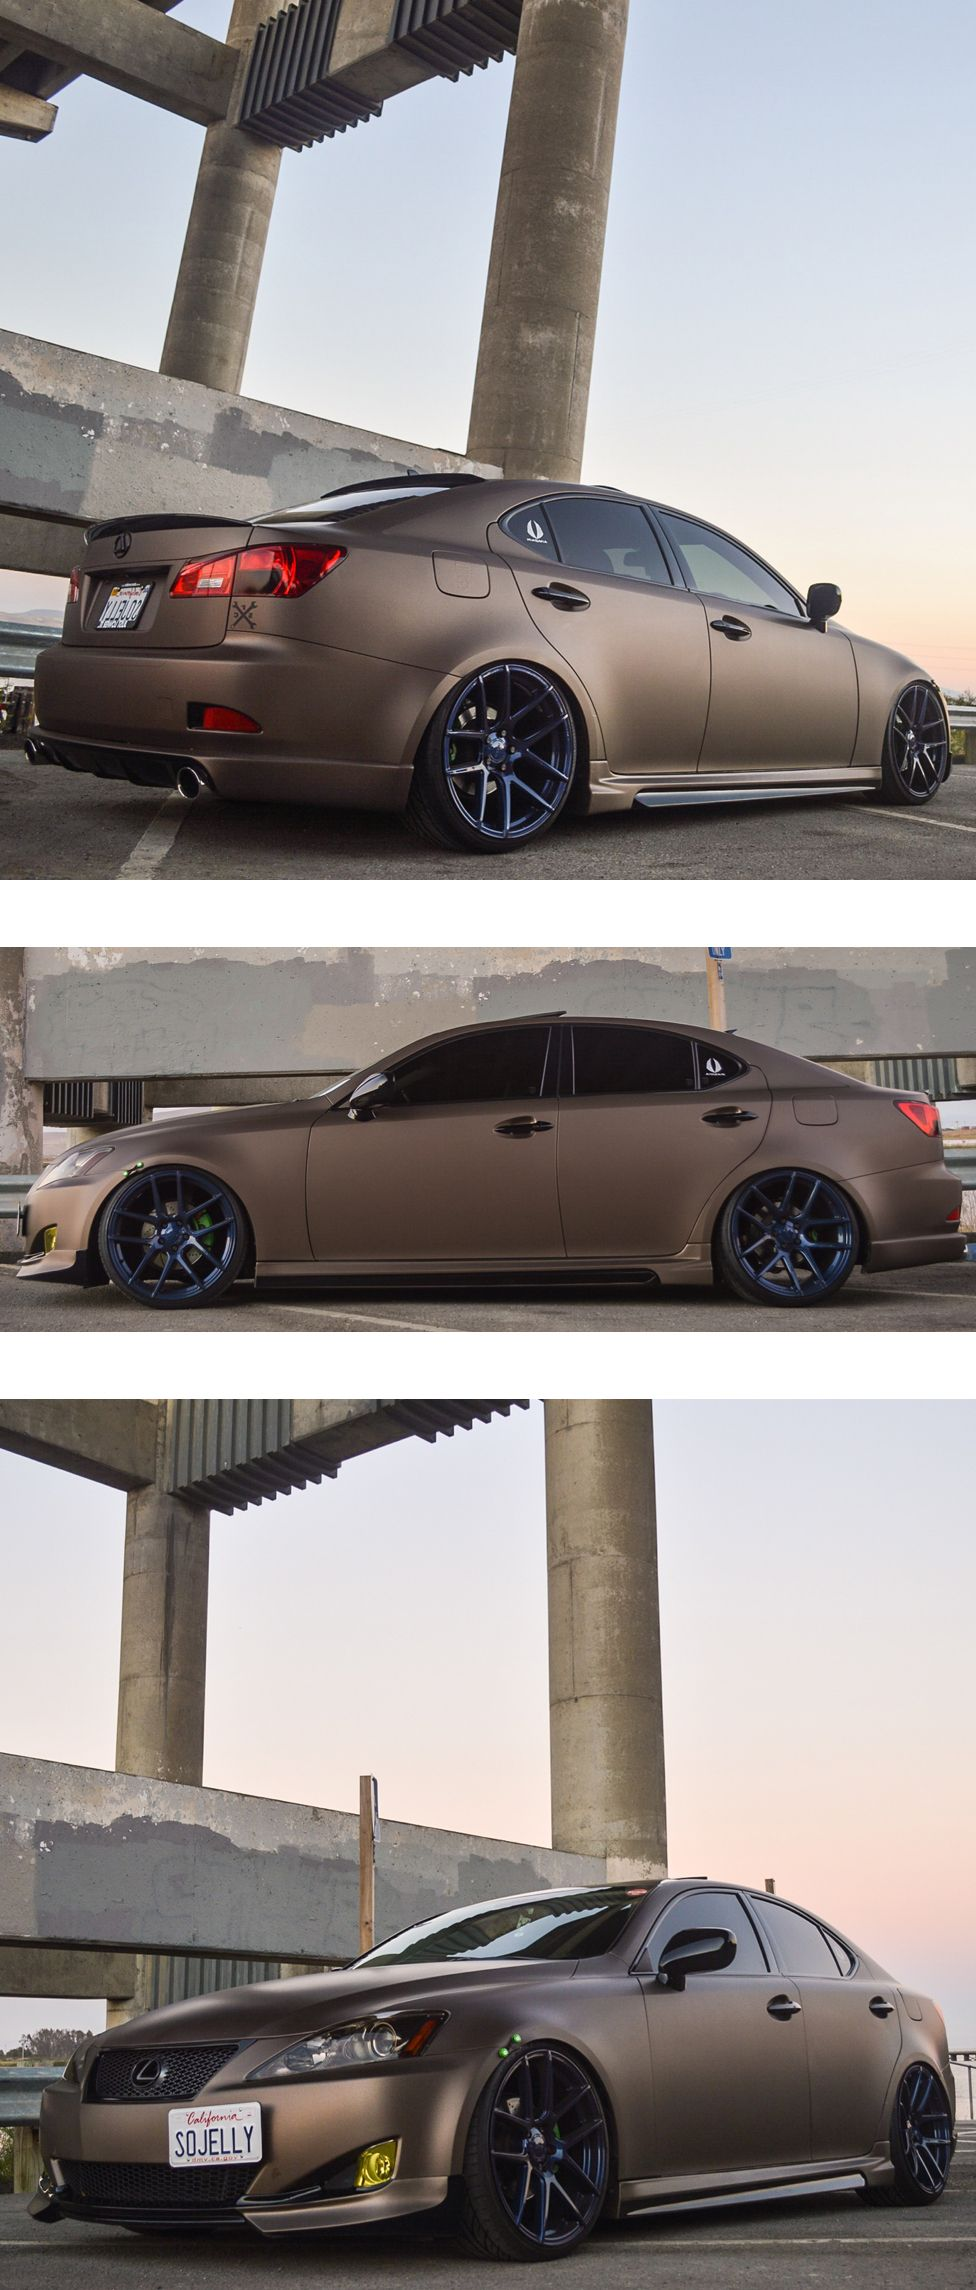 Sick Wrap And Images Of This Lexus From Speed Fiendz Garage Wrapped With 3m 1080 Matte Brown Metallic Lexus Vinyl Wrap Car Vinyl For Cars